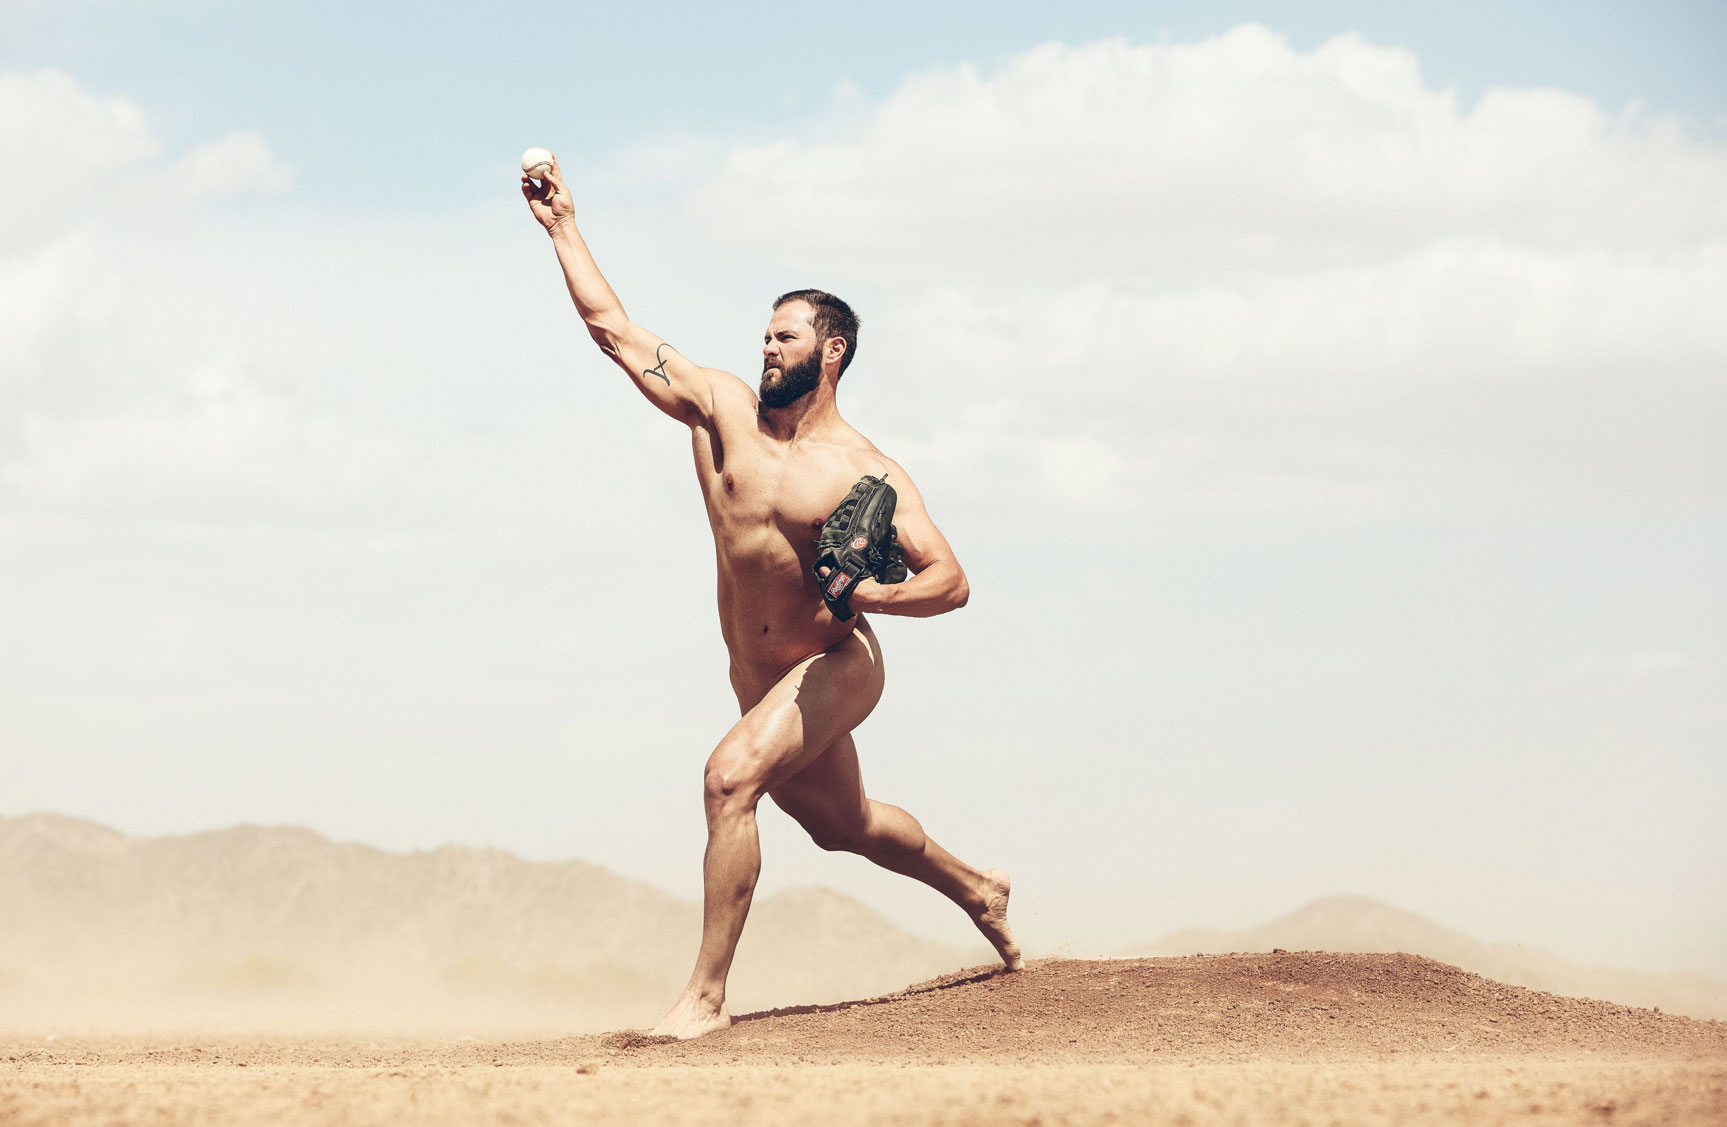 ESPN Magazine The Body Issue 2016 - Jake Arrieta / Джейк Арриета - Культ тела журнала ESPN